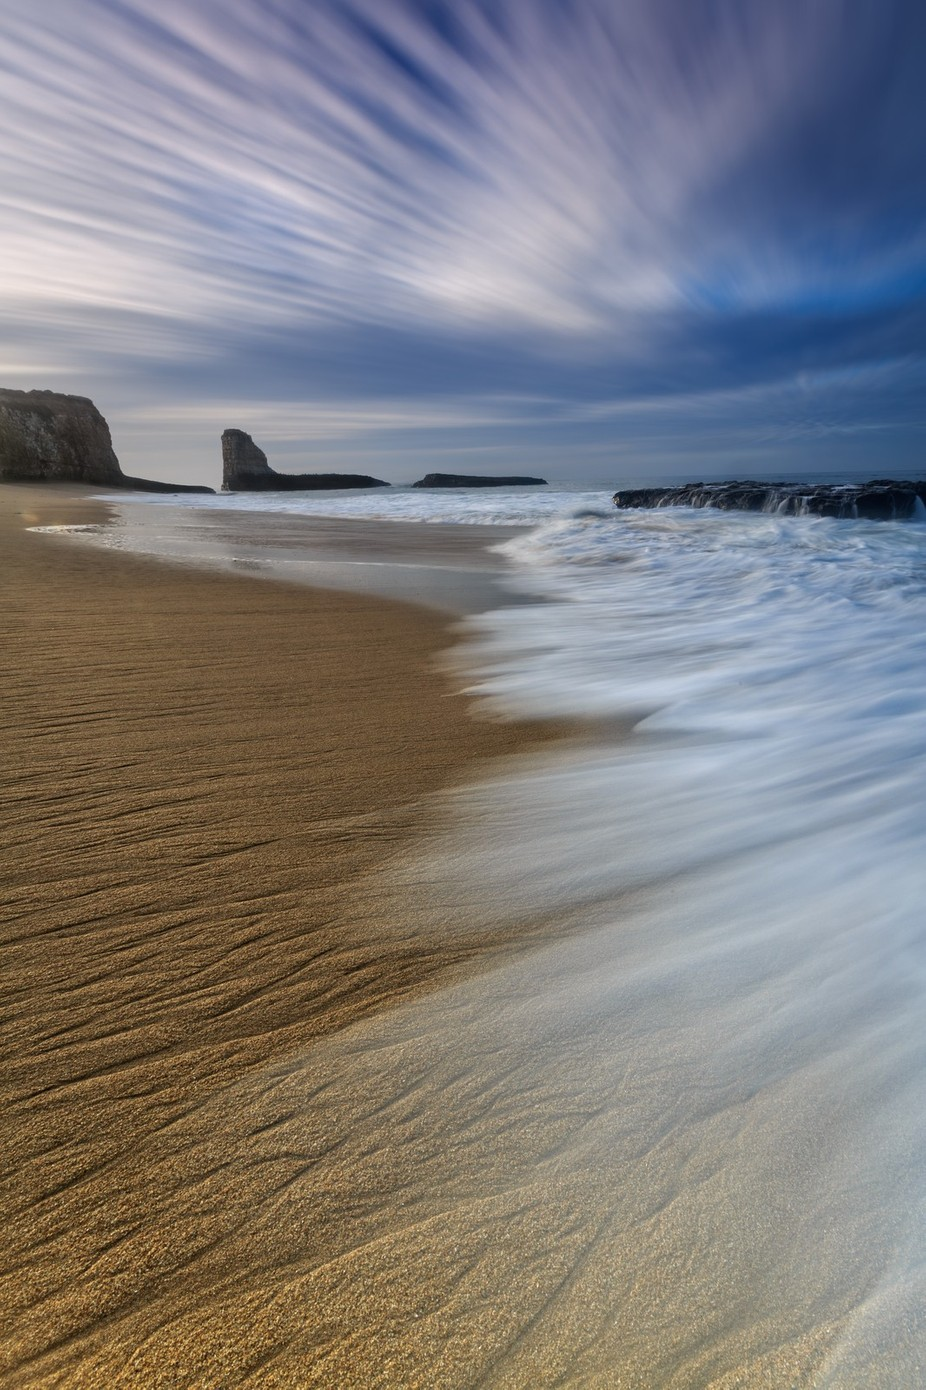 Sand and Sea by diversionphotography - Long Exposure Views Photo Contest